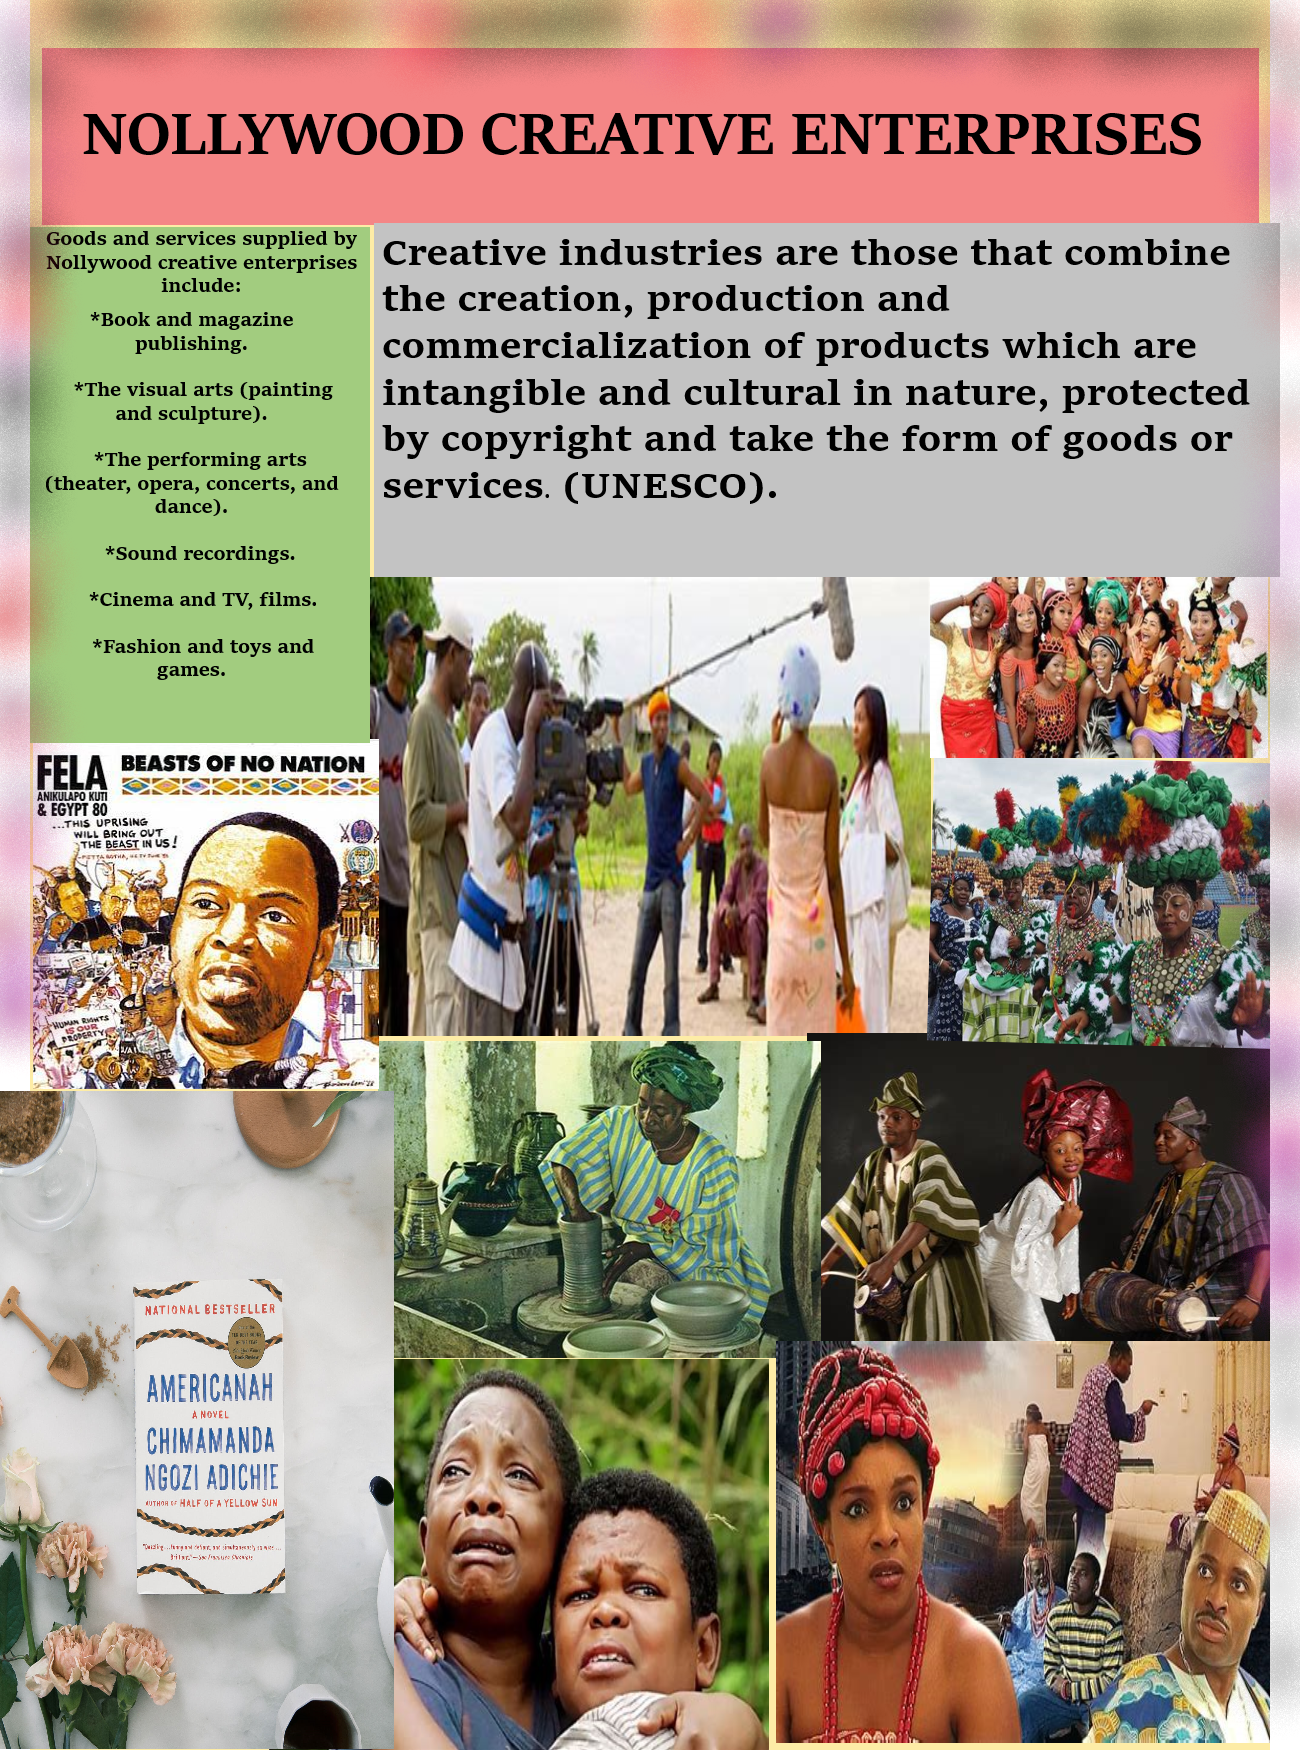 Nollywood creative enterprises